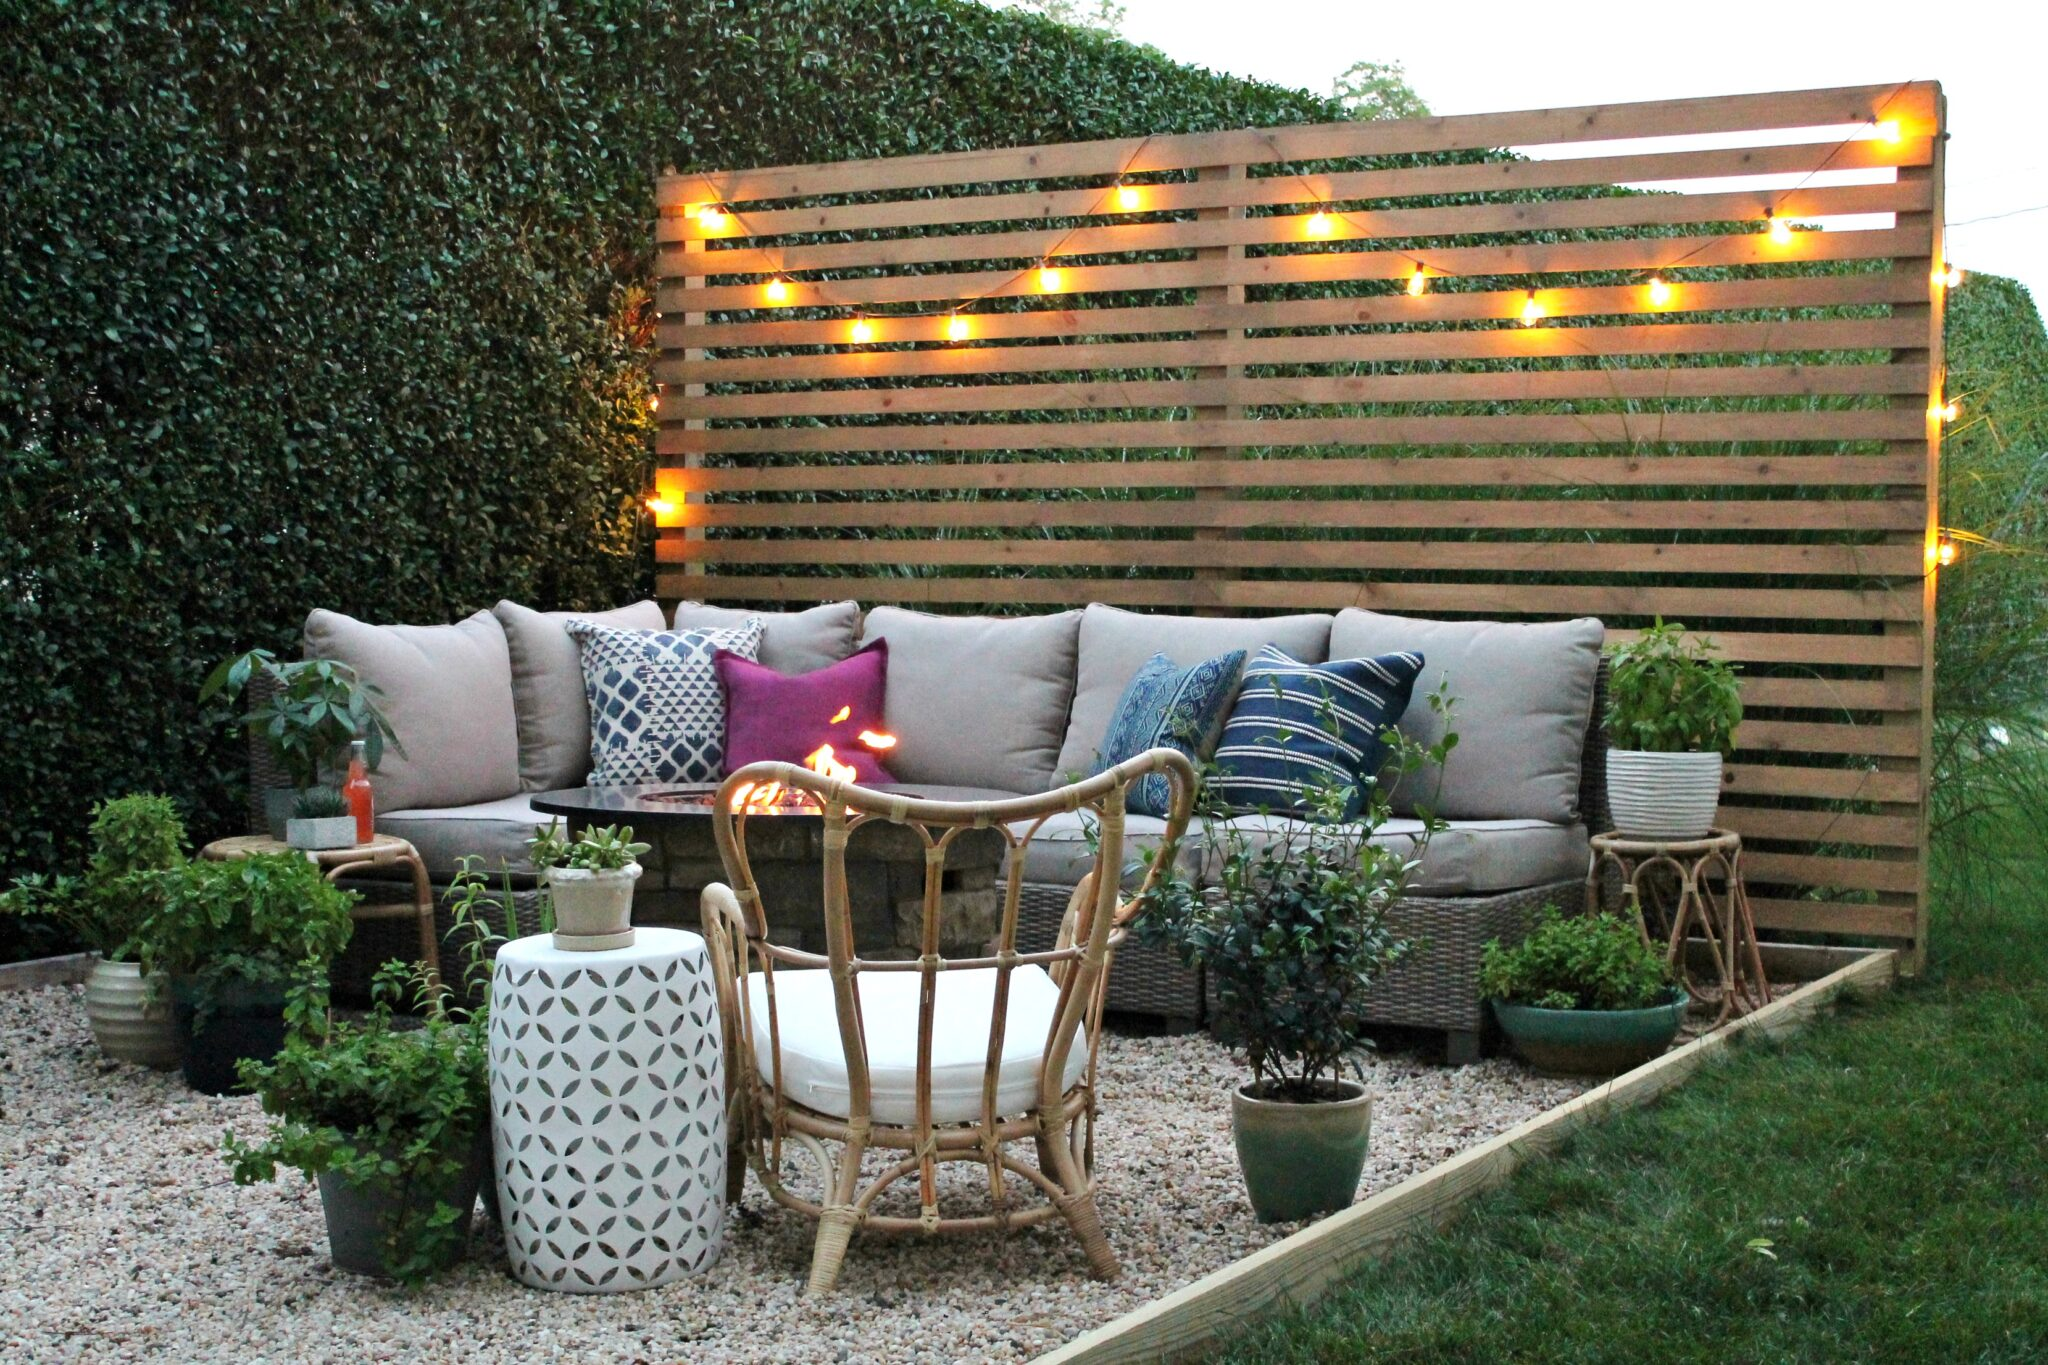 Outdoor Patio With Sectional Fire Pit